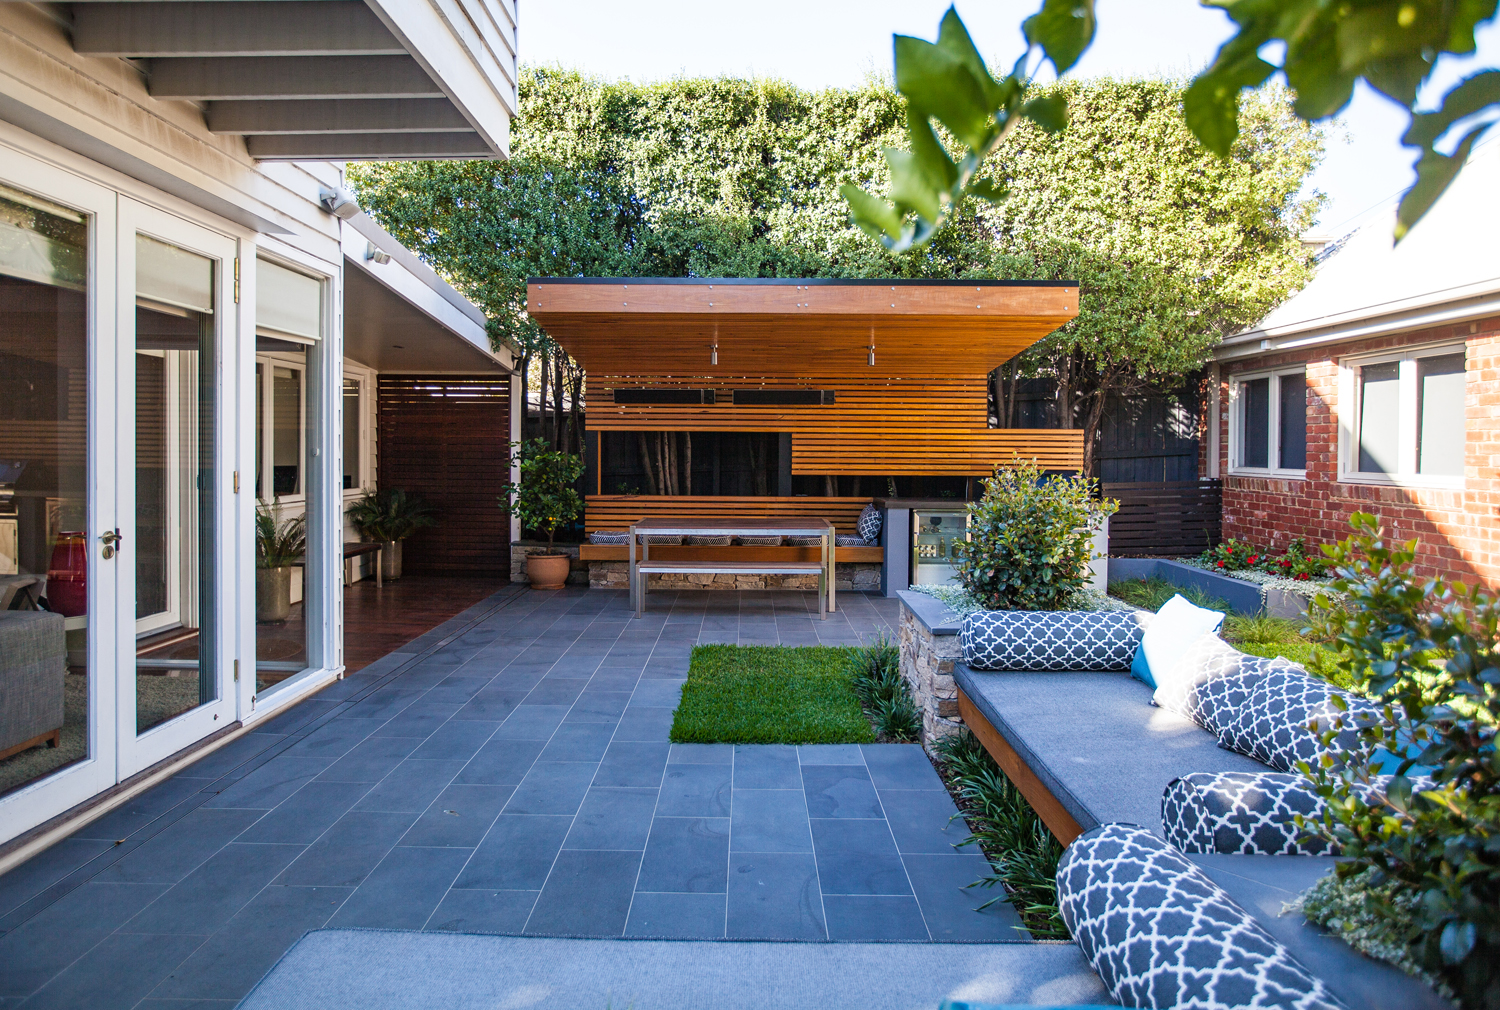 This South Australian home regulates heat in style with a clever pergola system